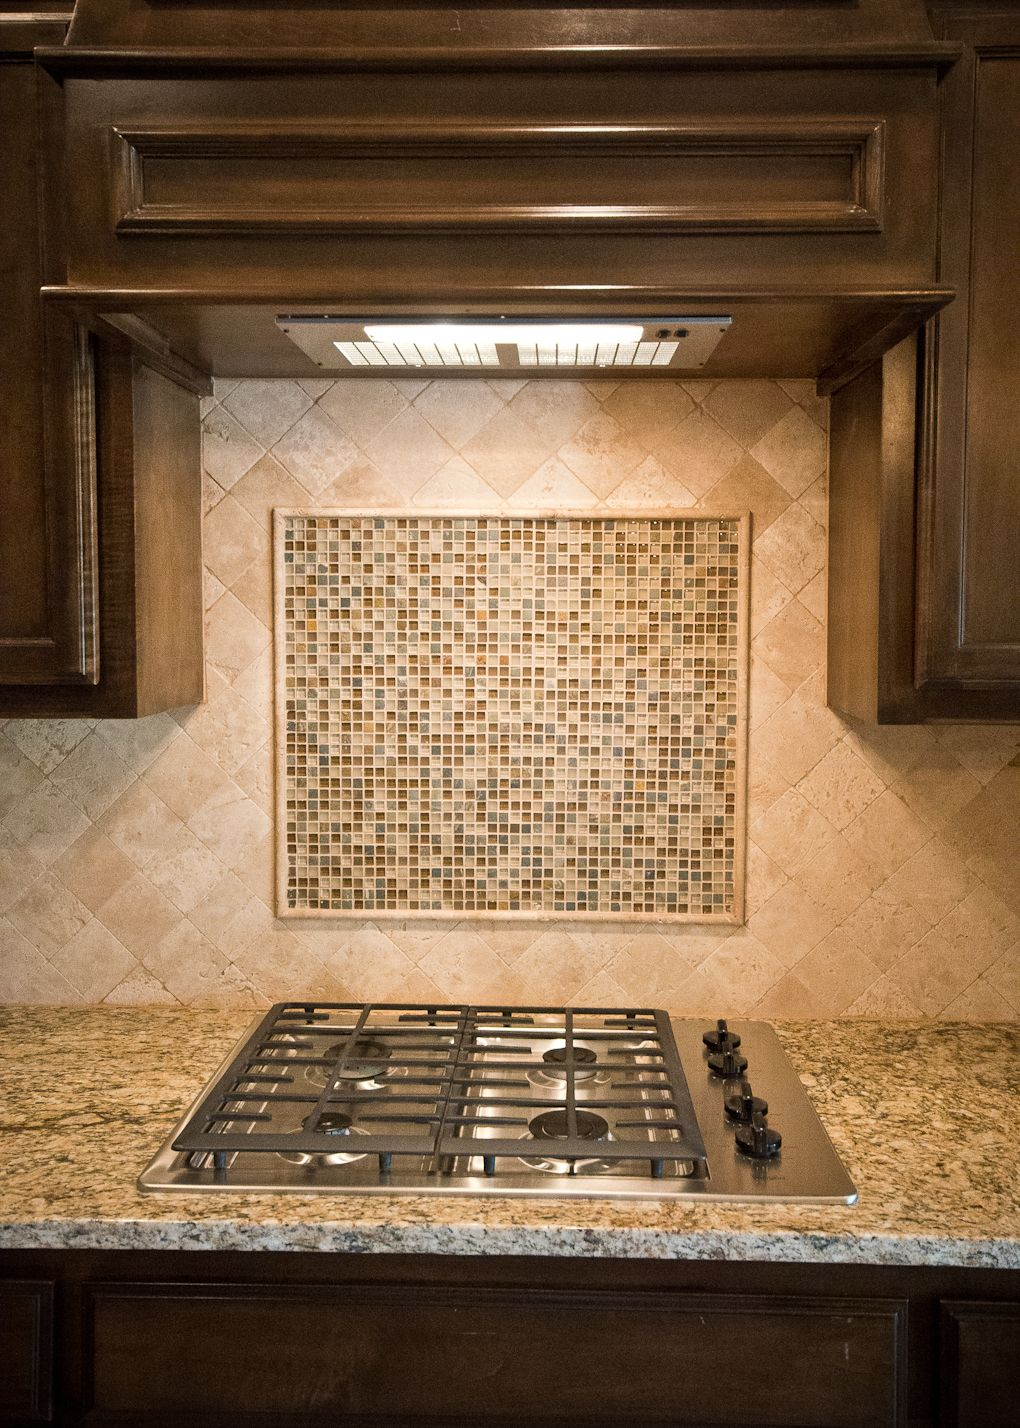 Beacon Homes Stamford Cooktop With Walnut Travertine Backsplash Mosaic Tile Accent